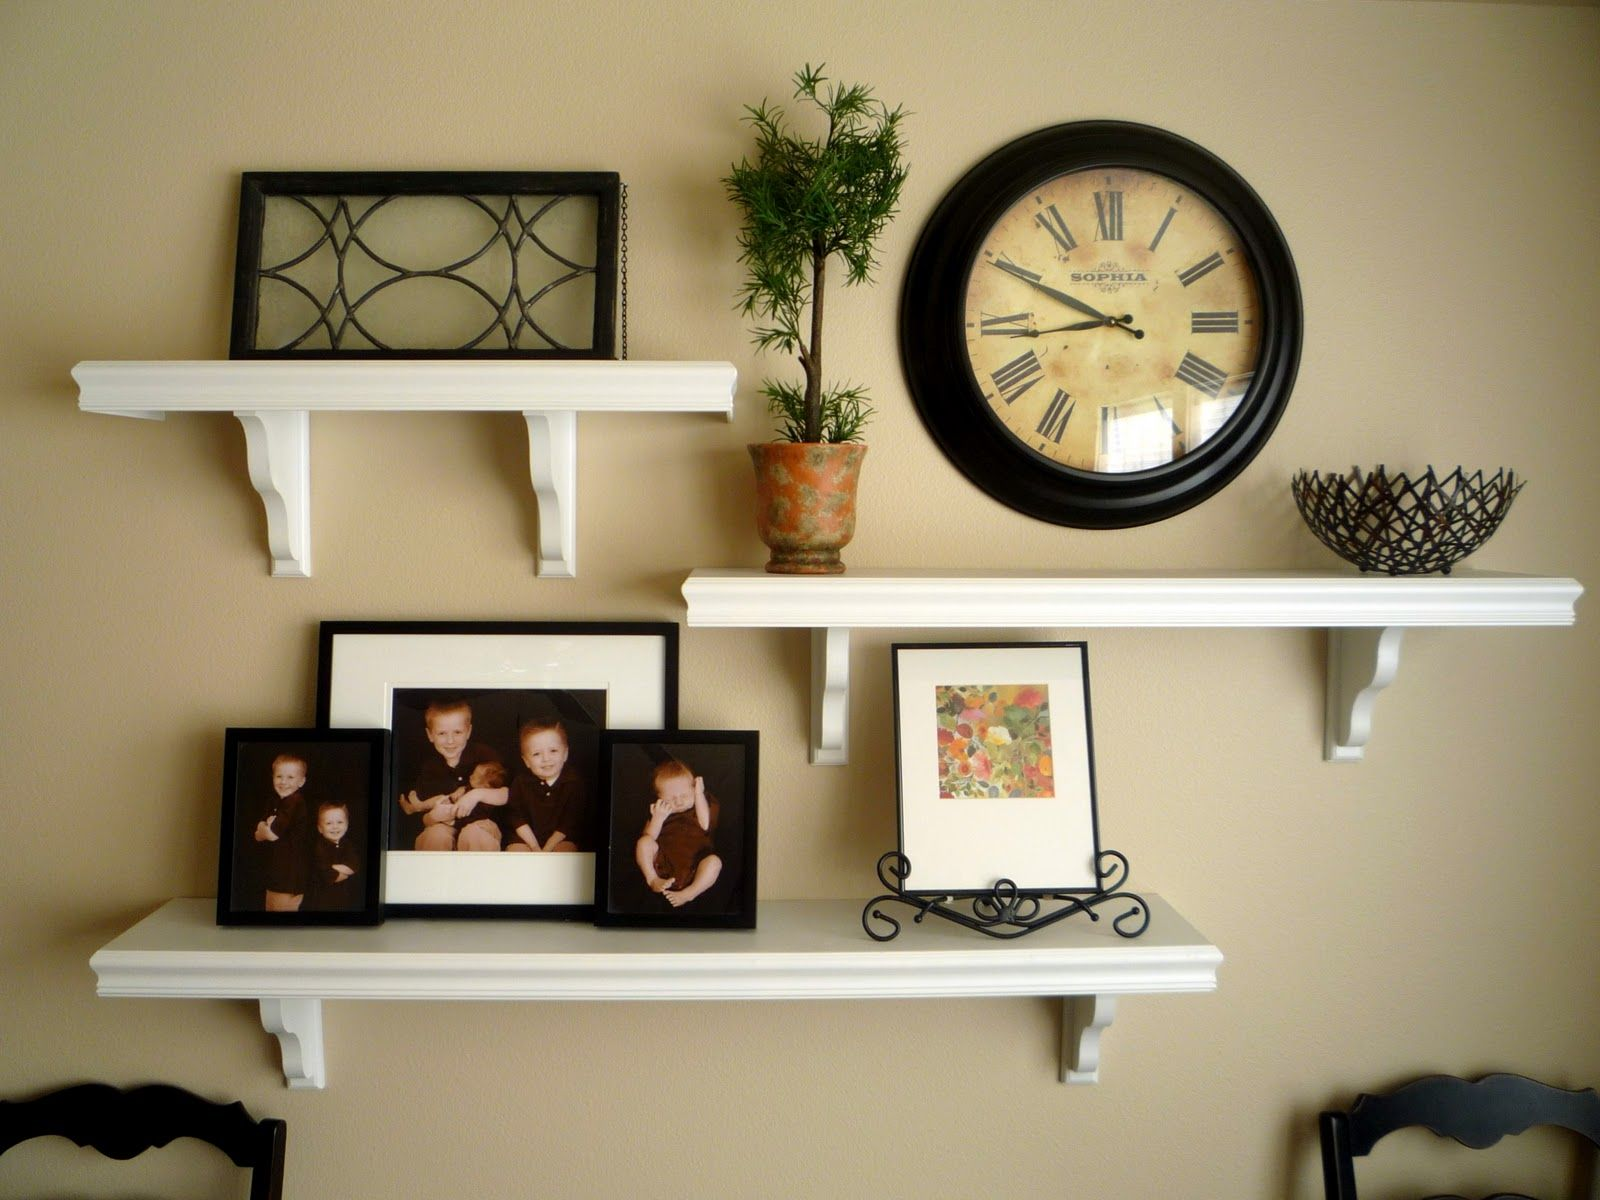 Picture and shelves on wall together it all started for Shelf decor items